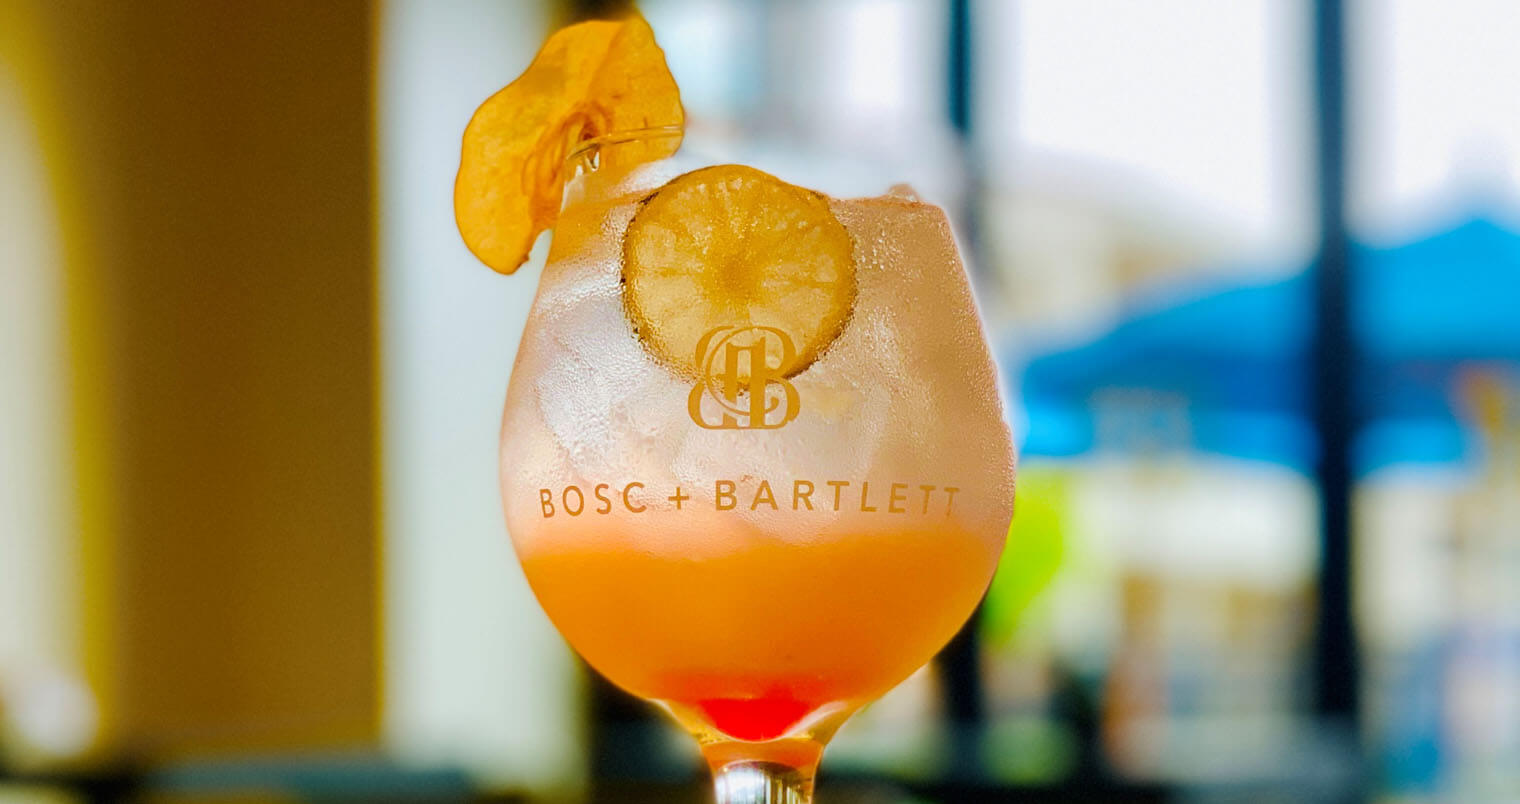 Who's the Bosc, cocktail, featured image